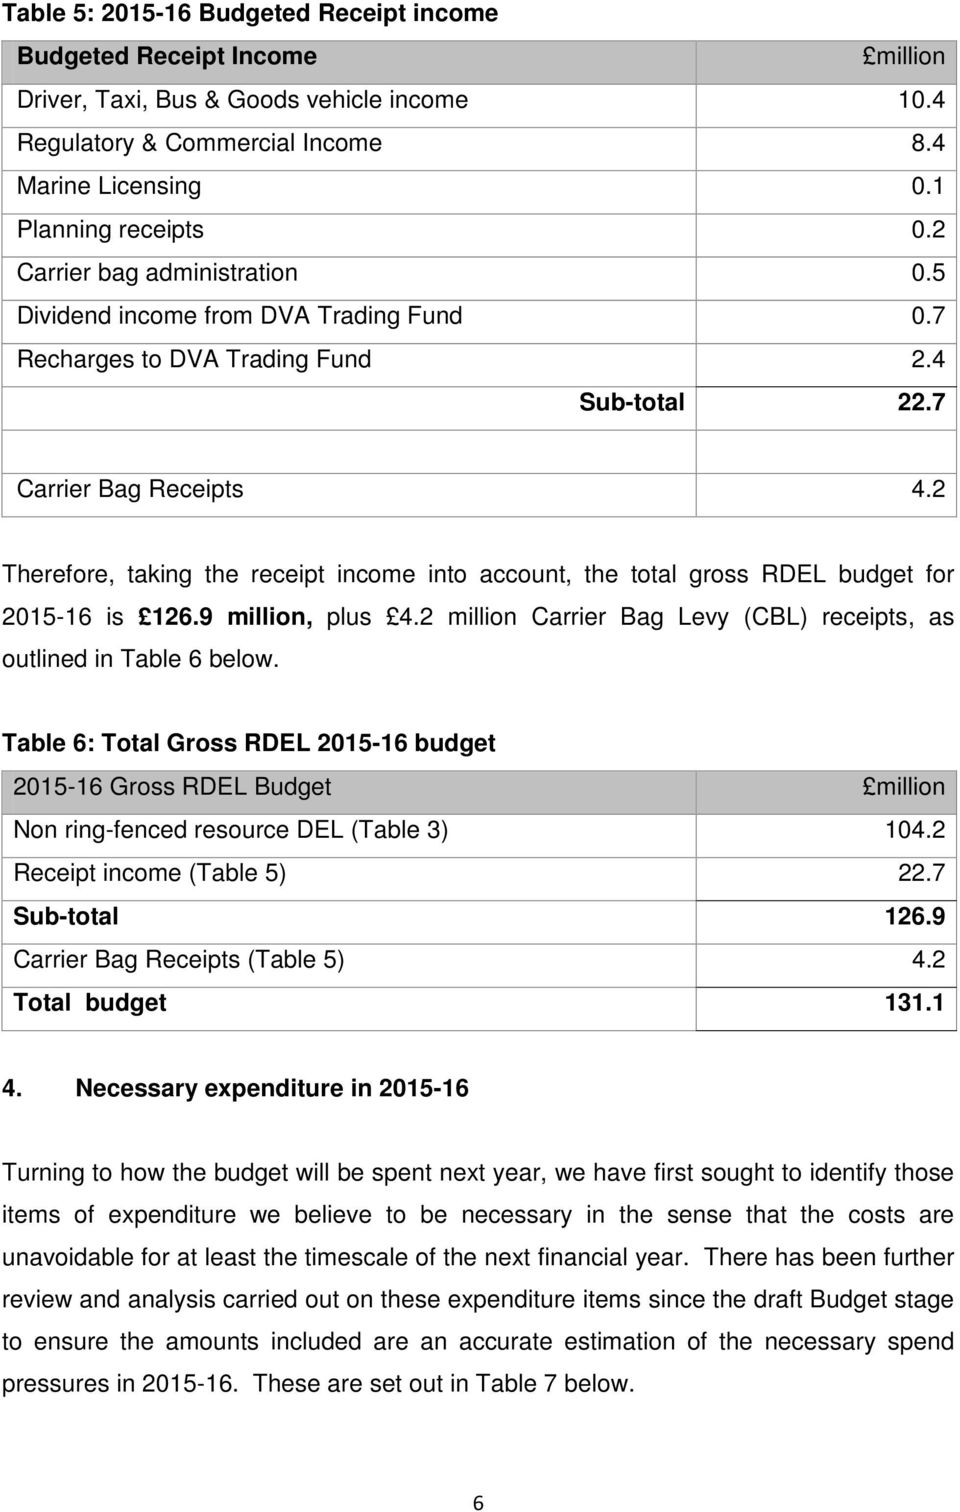 2 Therefore, taking the receipt income into account, the total gross RDEL budget for 2015-16 is 126.9 million, plus 4.2 million Carrier Bag Levy (CBL) receipts, as outlined in Table 6 below.